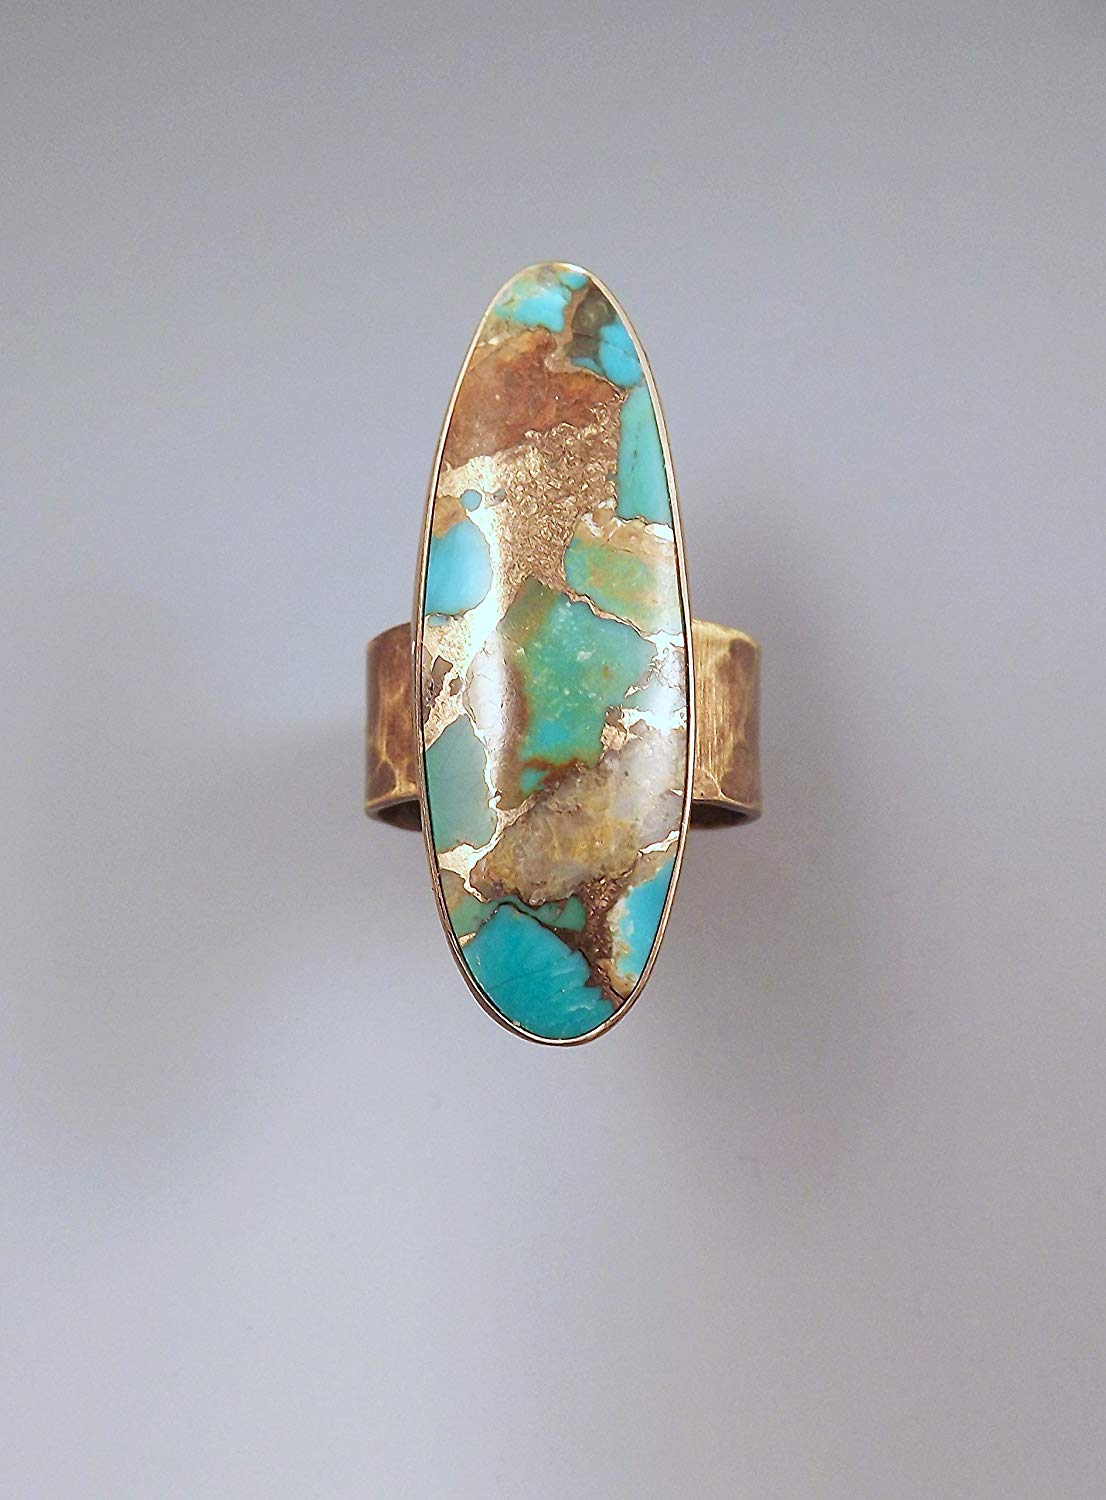 Turquoise Patina Ring- Boho Chic- Merlin's Gold- Blue and Green- Turquoise Ring